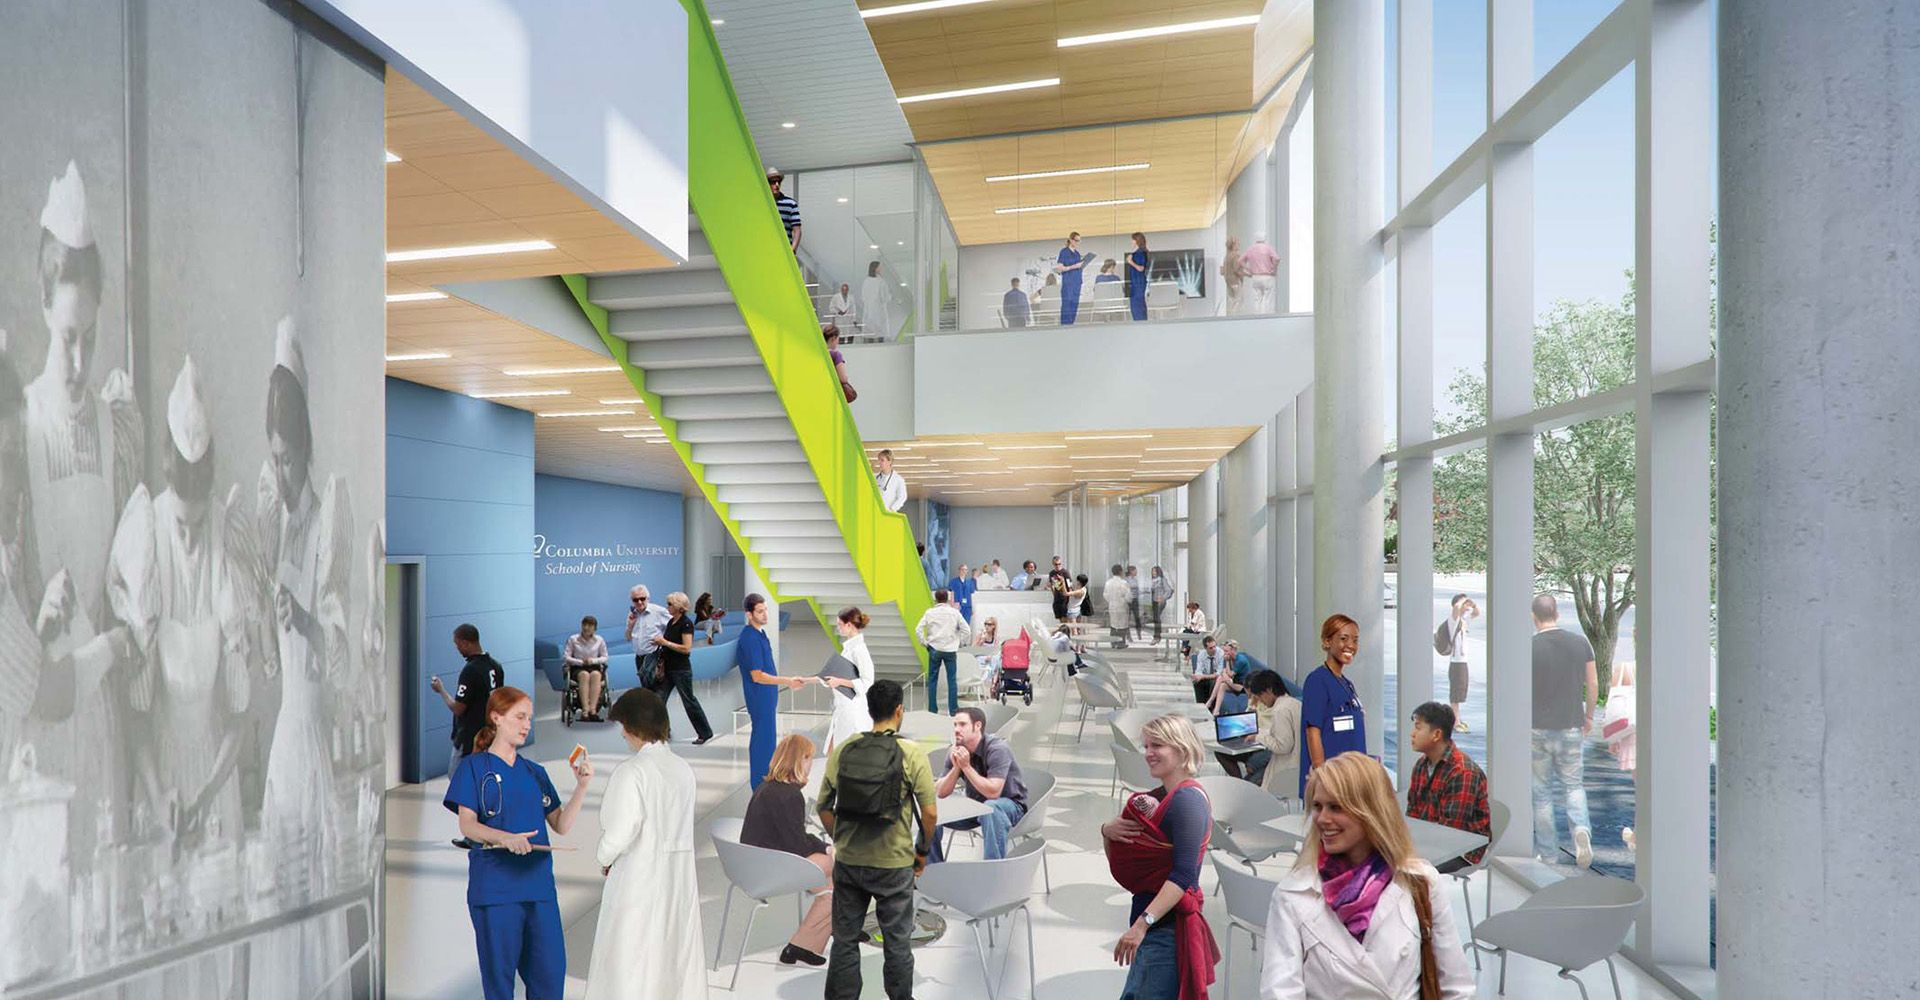 Co Fxfowle Won An Invited Competition For Columbia University Medical Center To Design A New 7 Story Faci Columbia University Medical University Nursing School